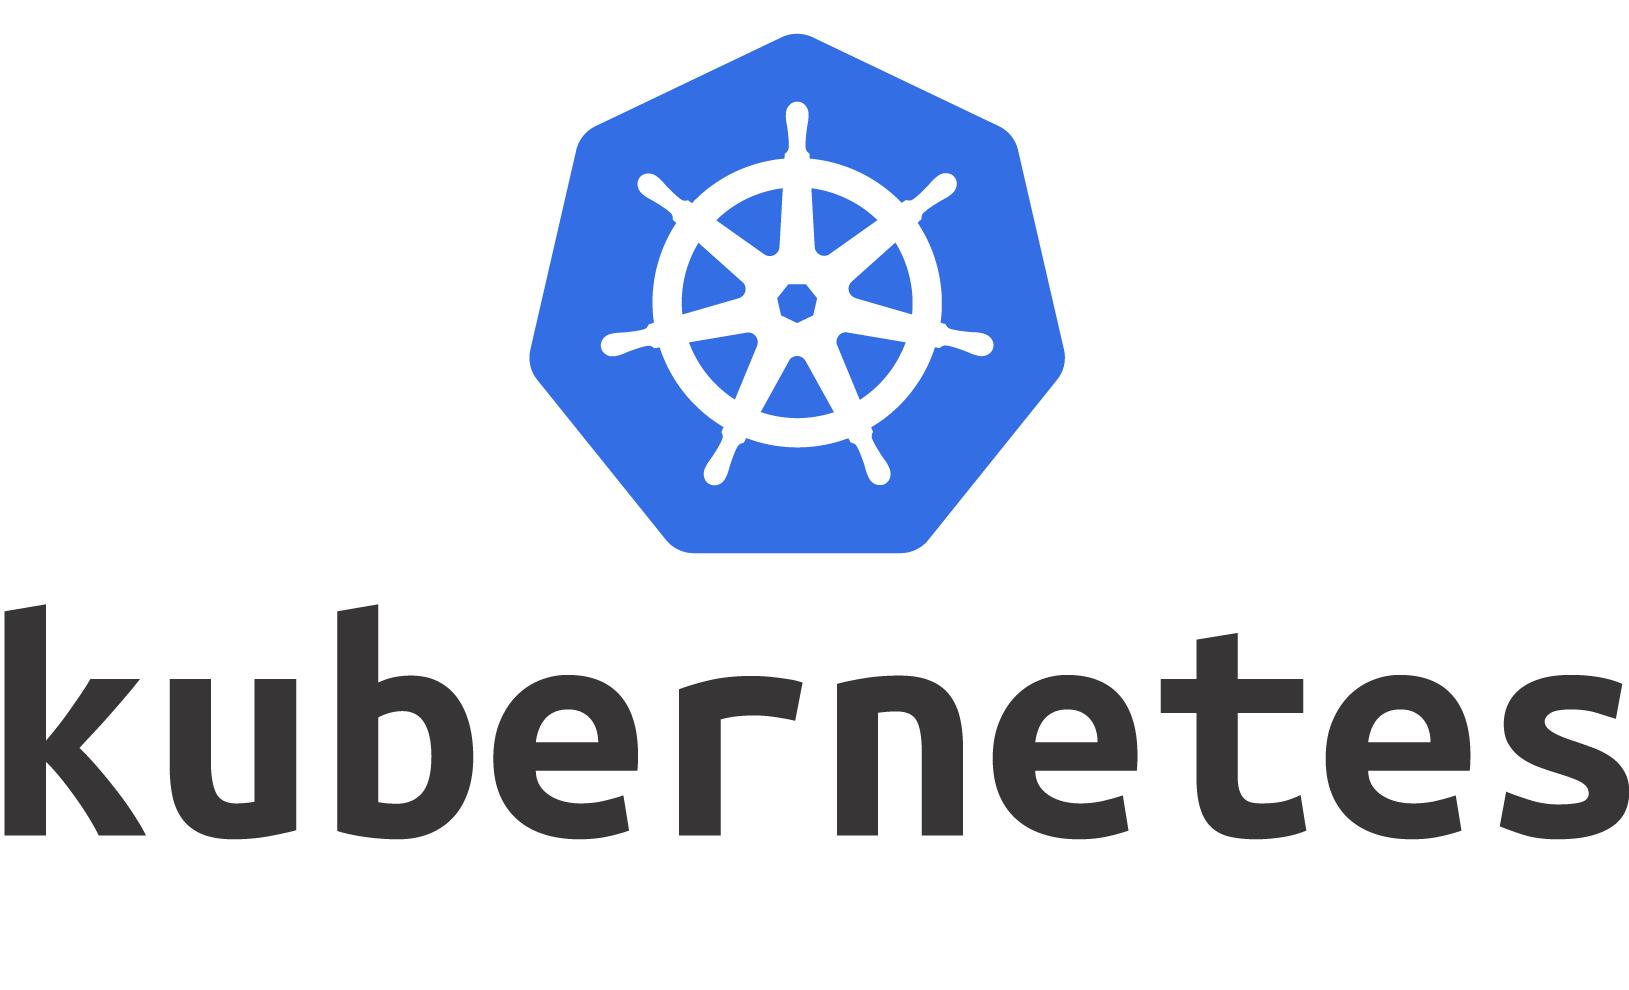 K8s - What Is Kubernetes?